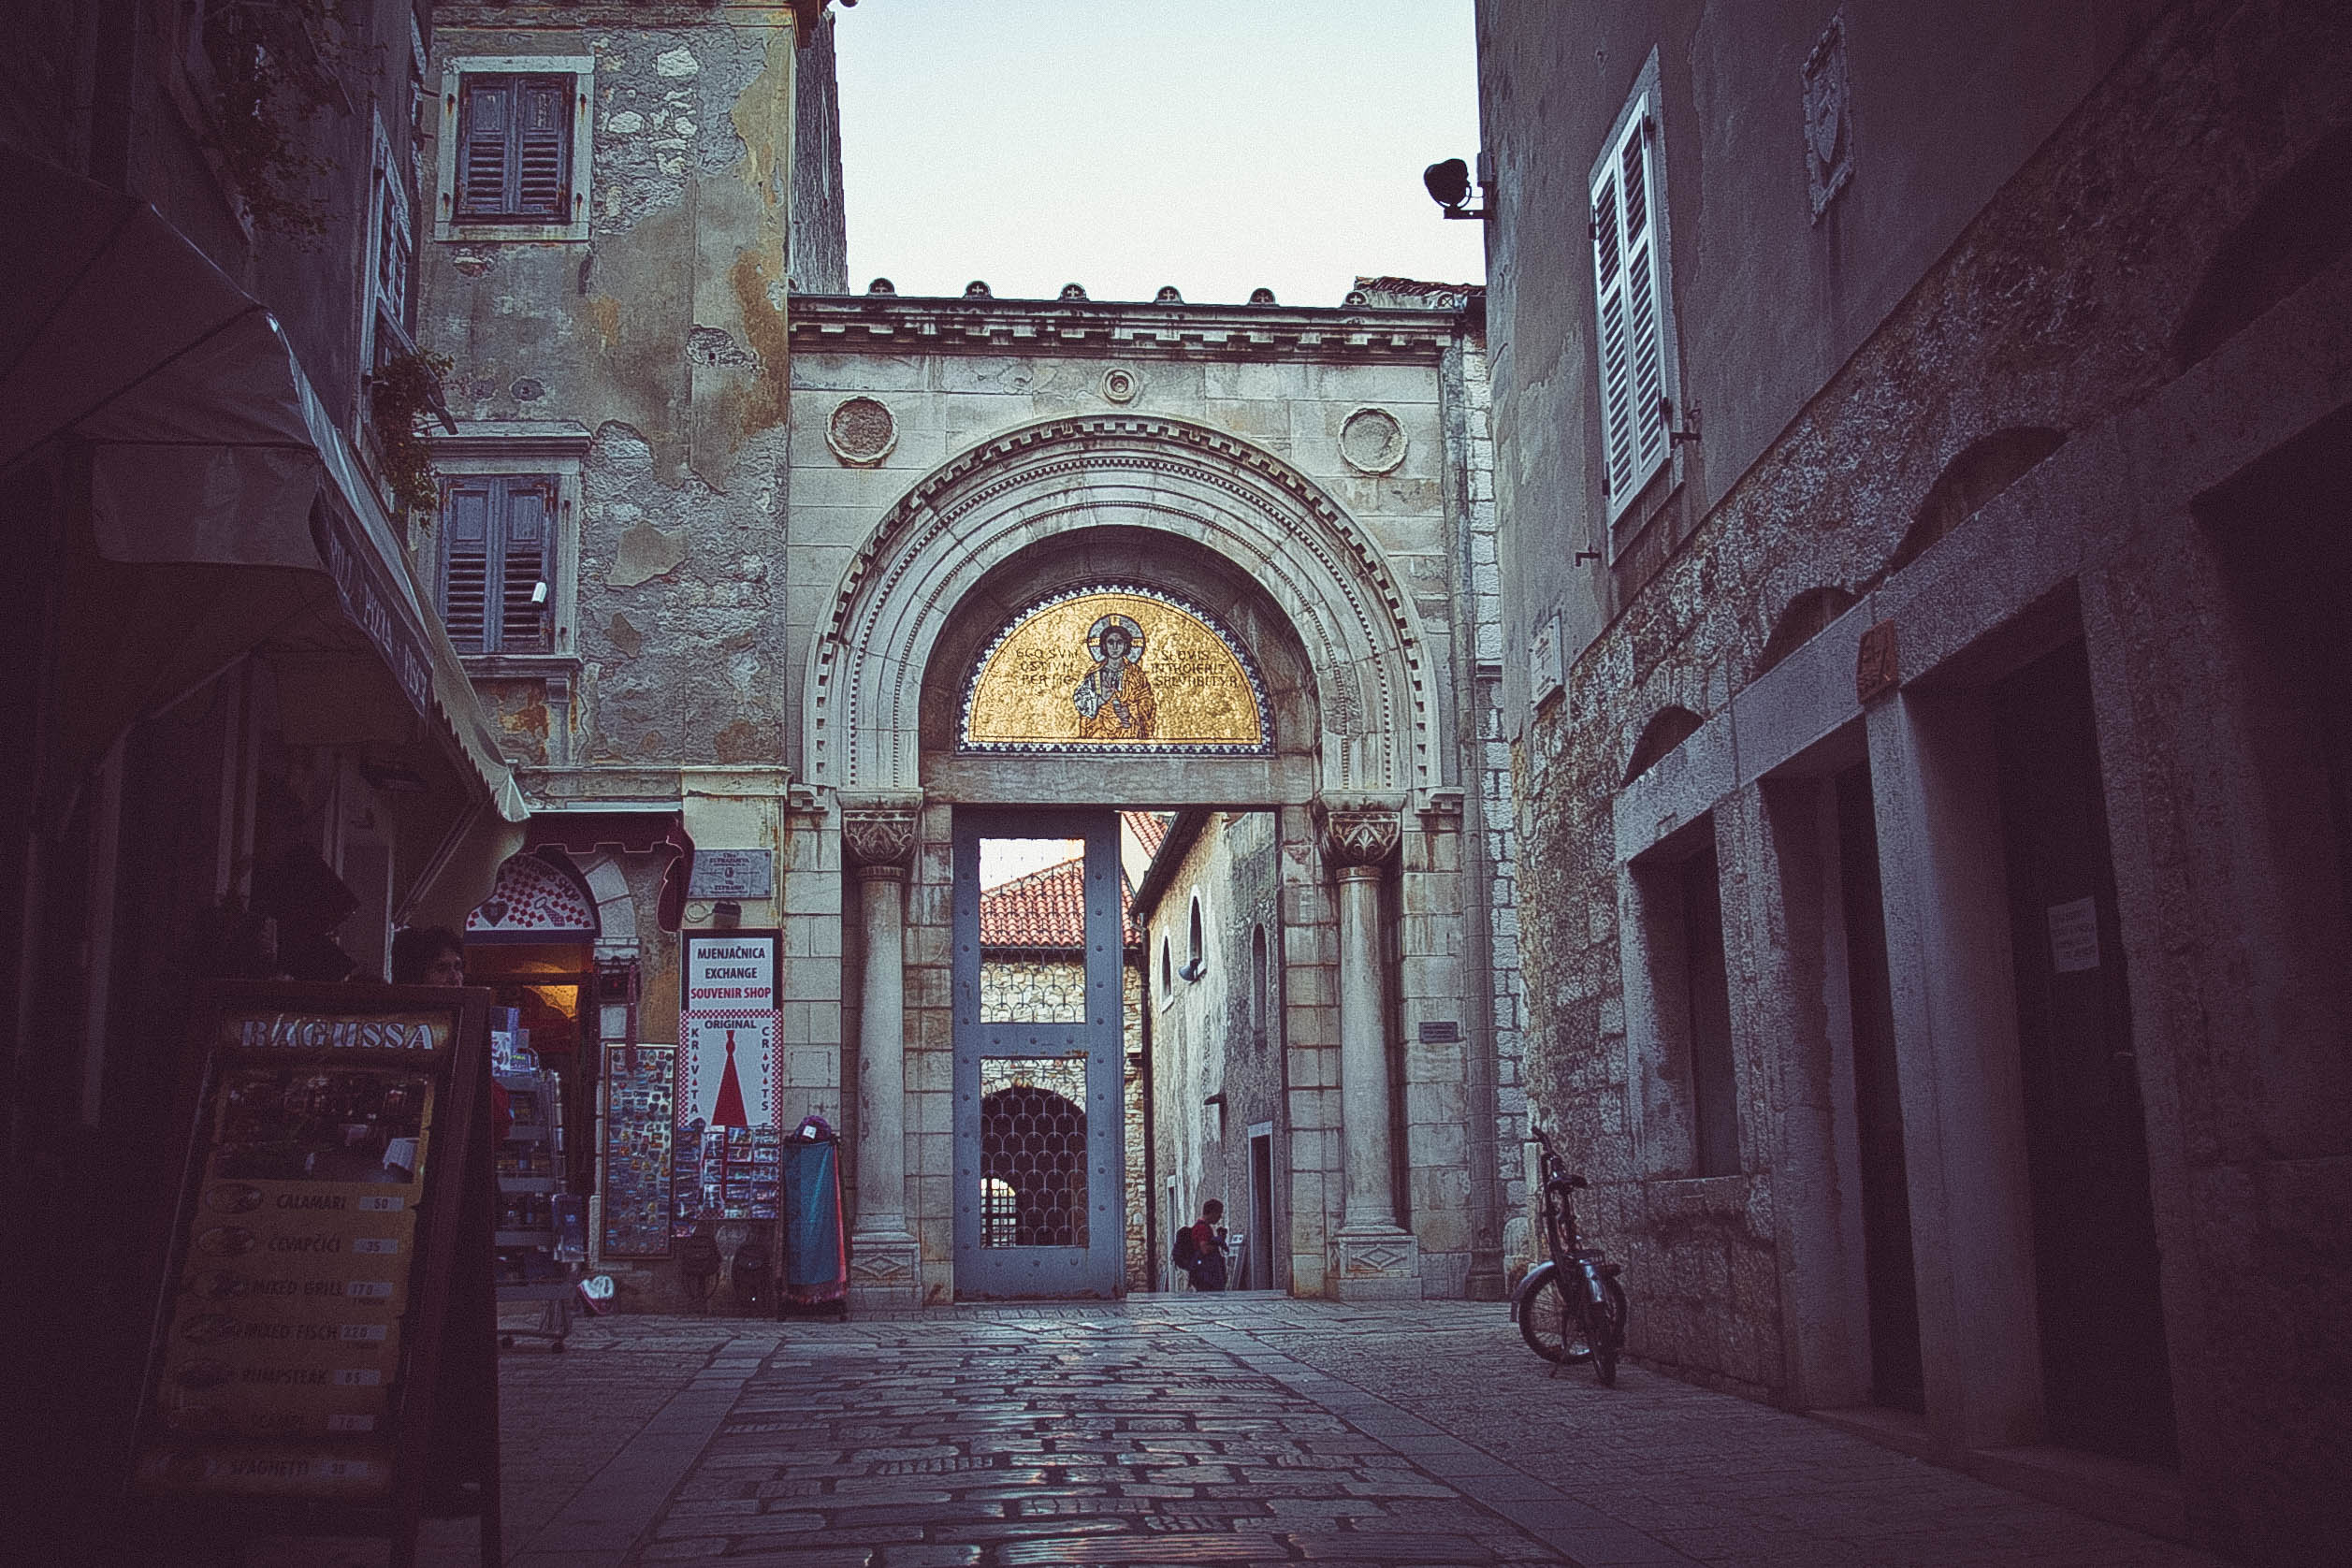 WALK THROUGH POREČ AND DISCOVER ITS HISTORIC CENTER